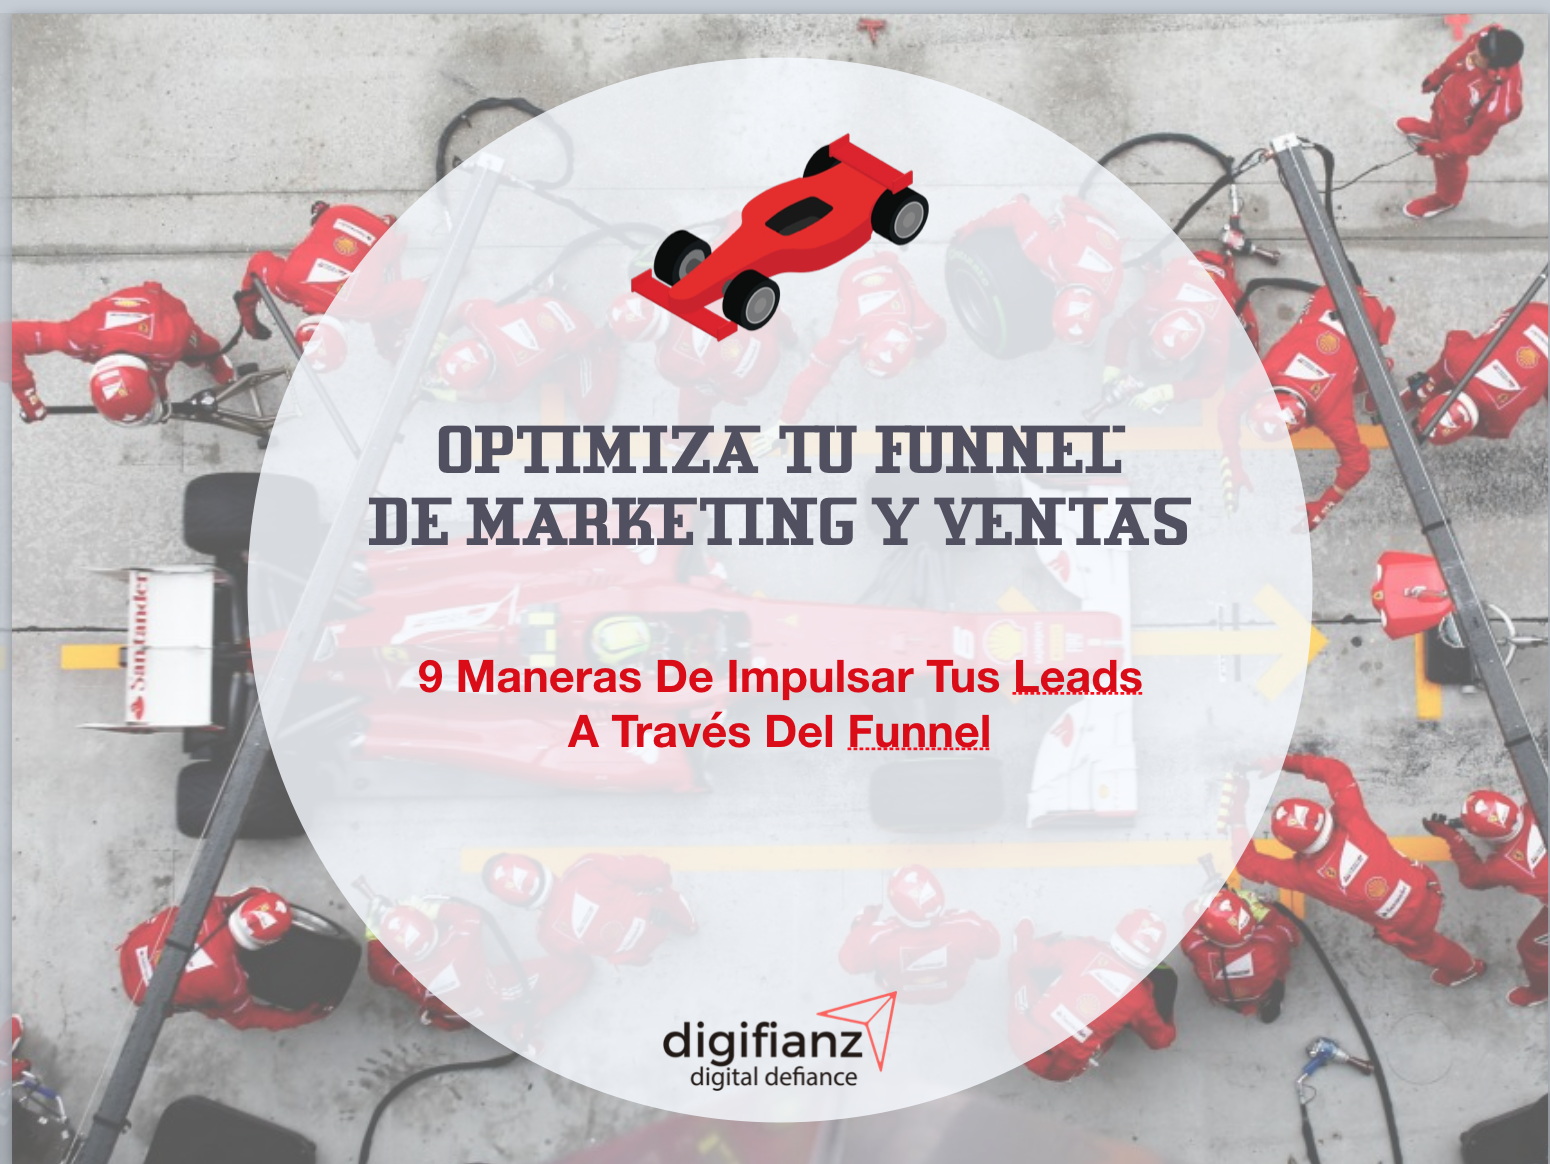 Optimiza tu funnel de marketing y ventas